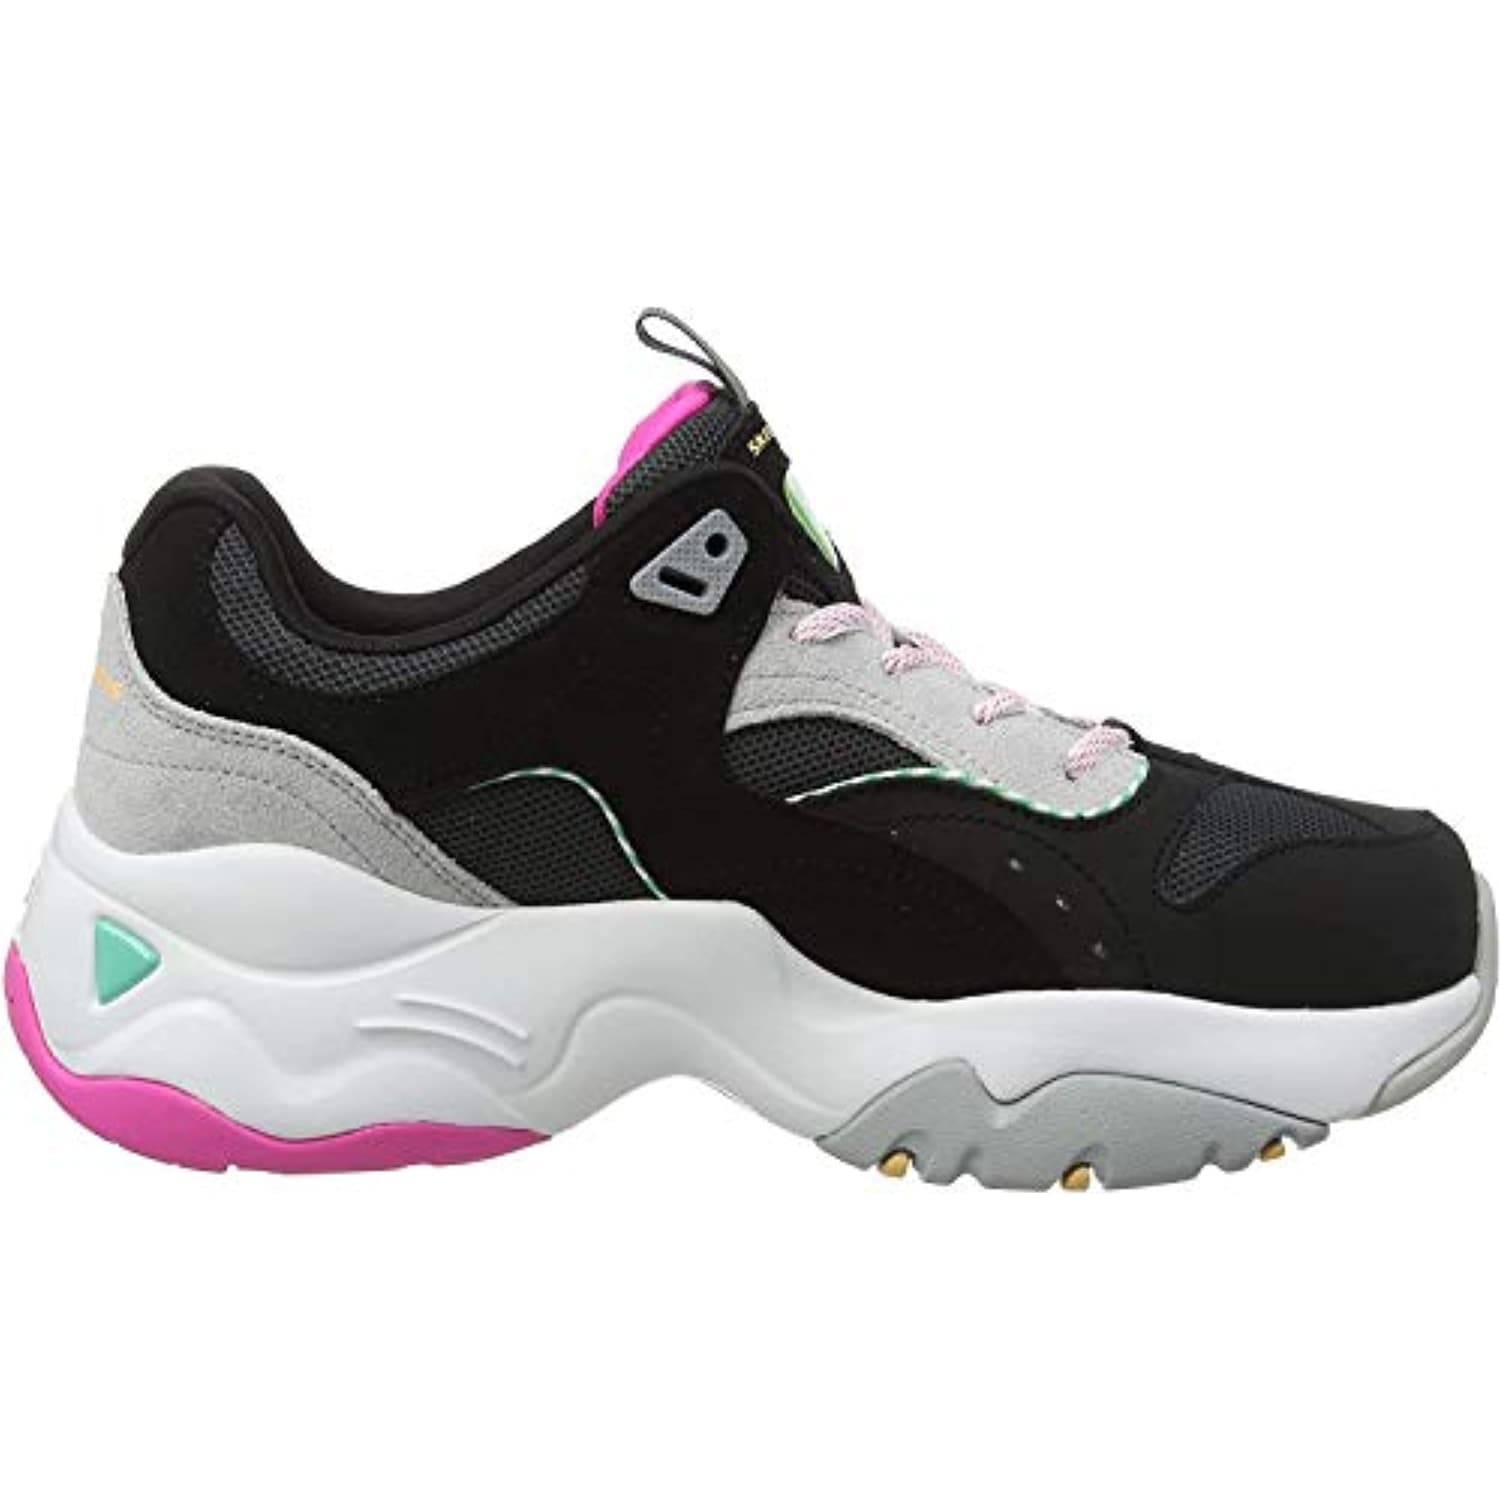 skechers trainers black and white